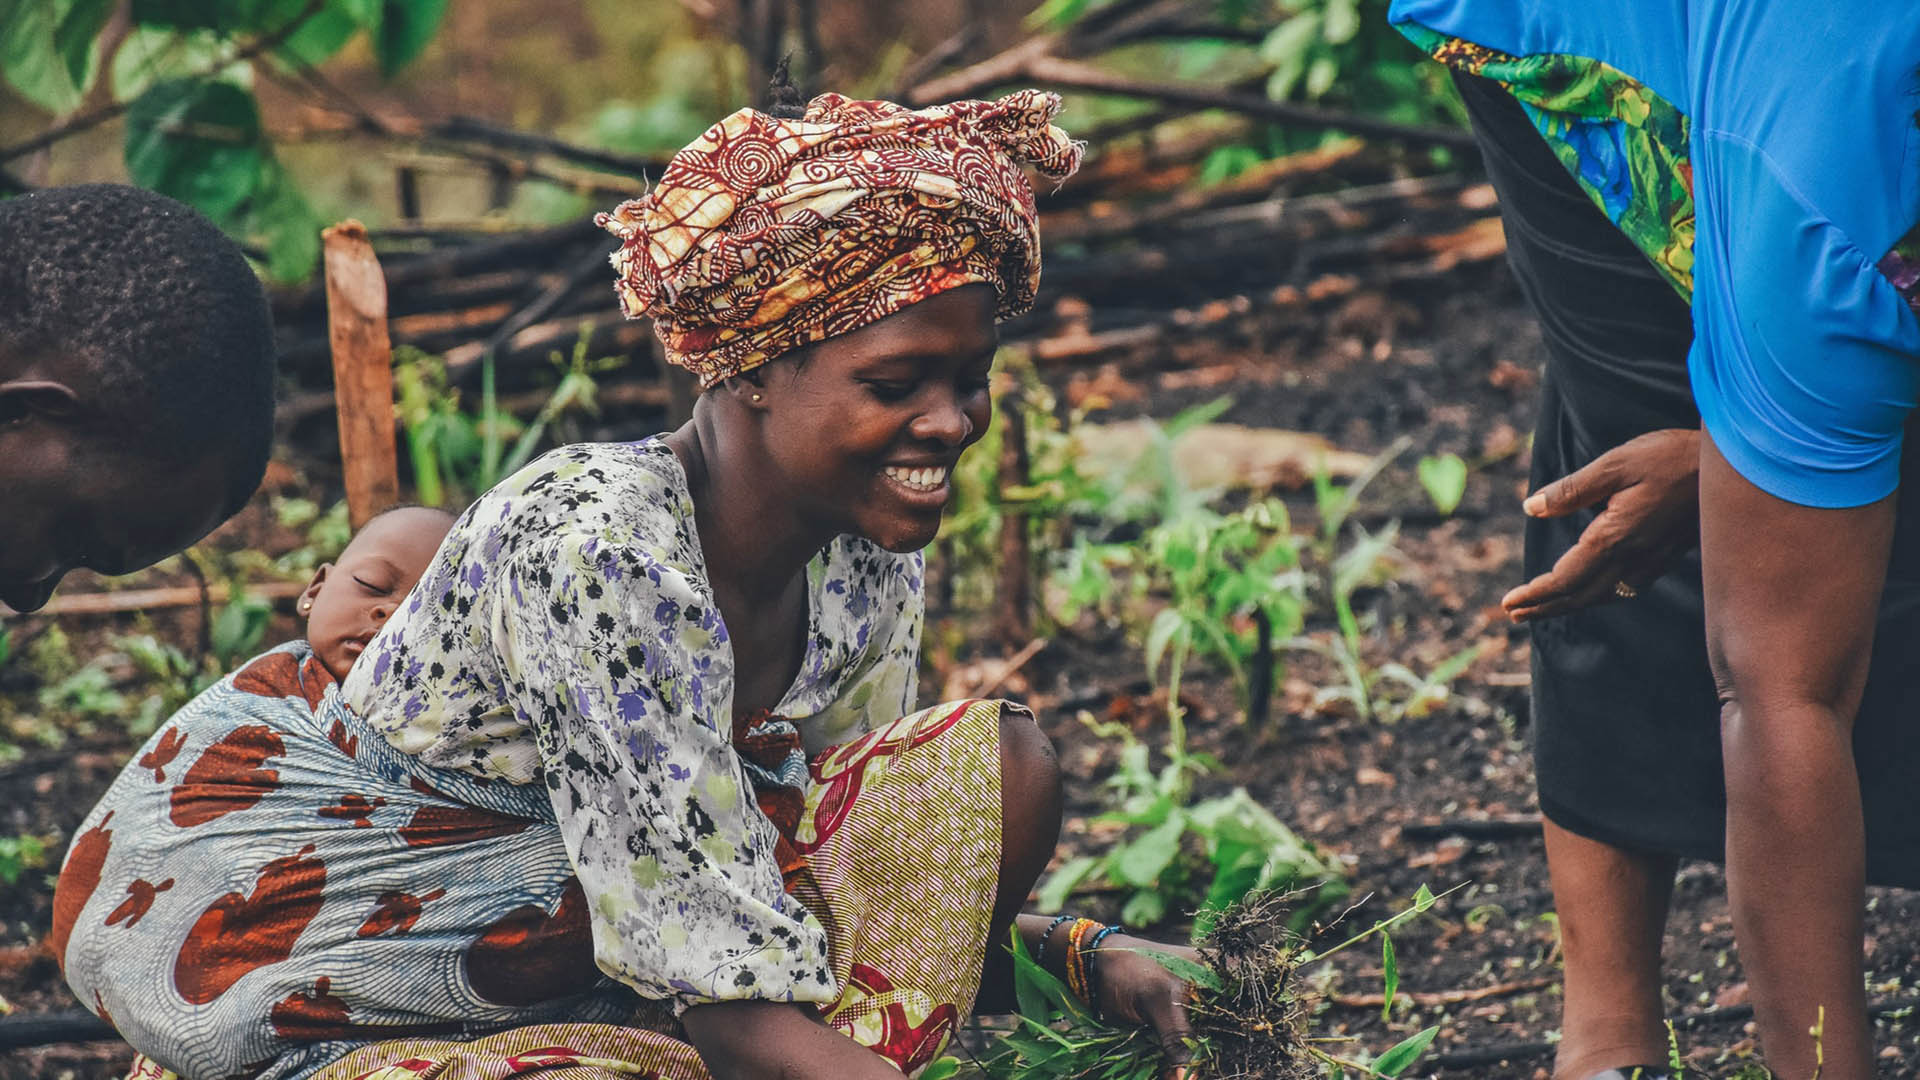 A woman in a head wrap tends to a field. There is a baby in a sling on her back.